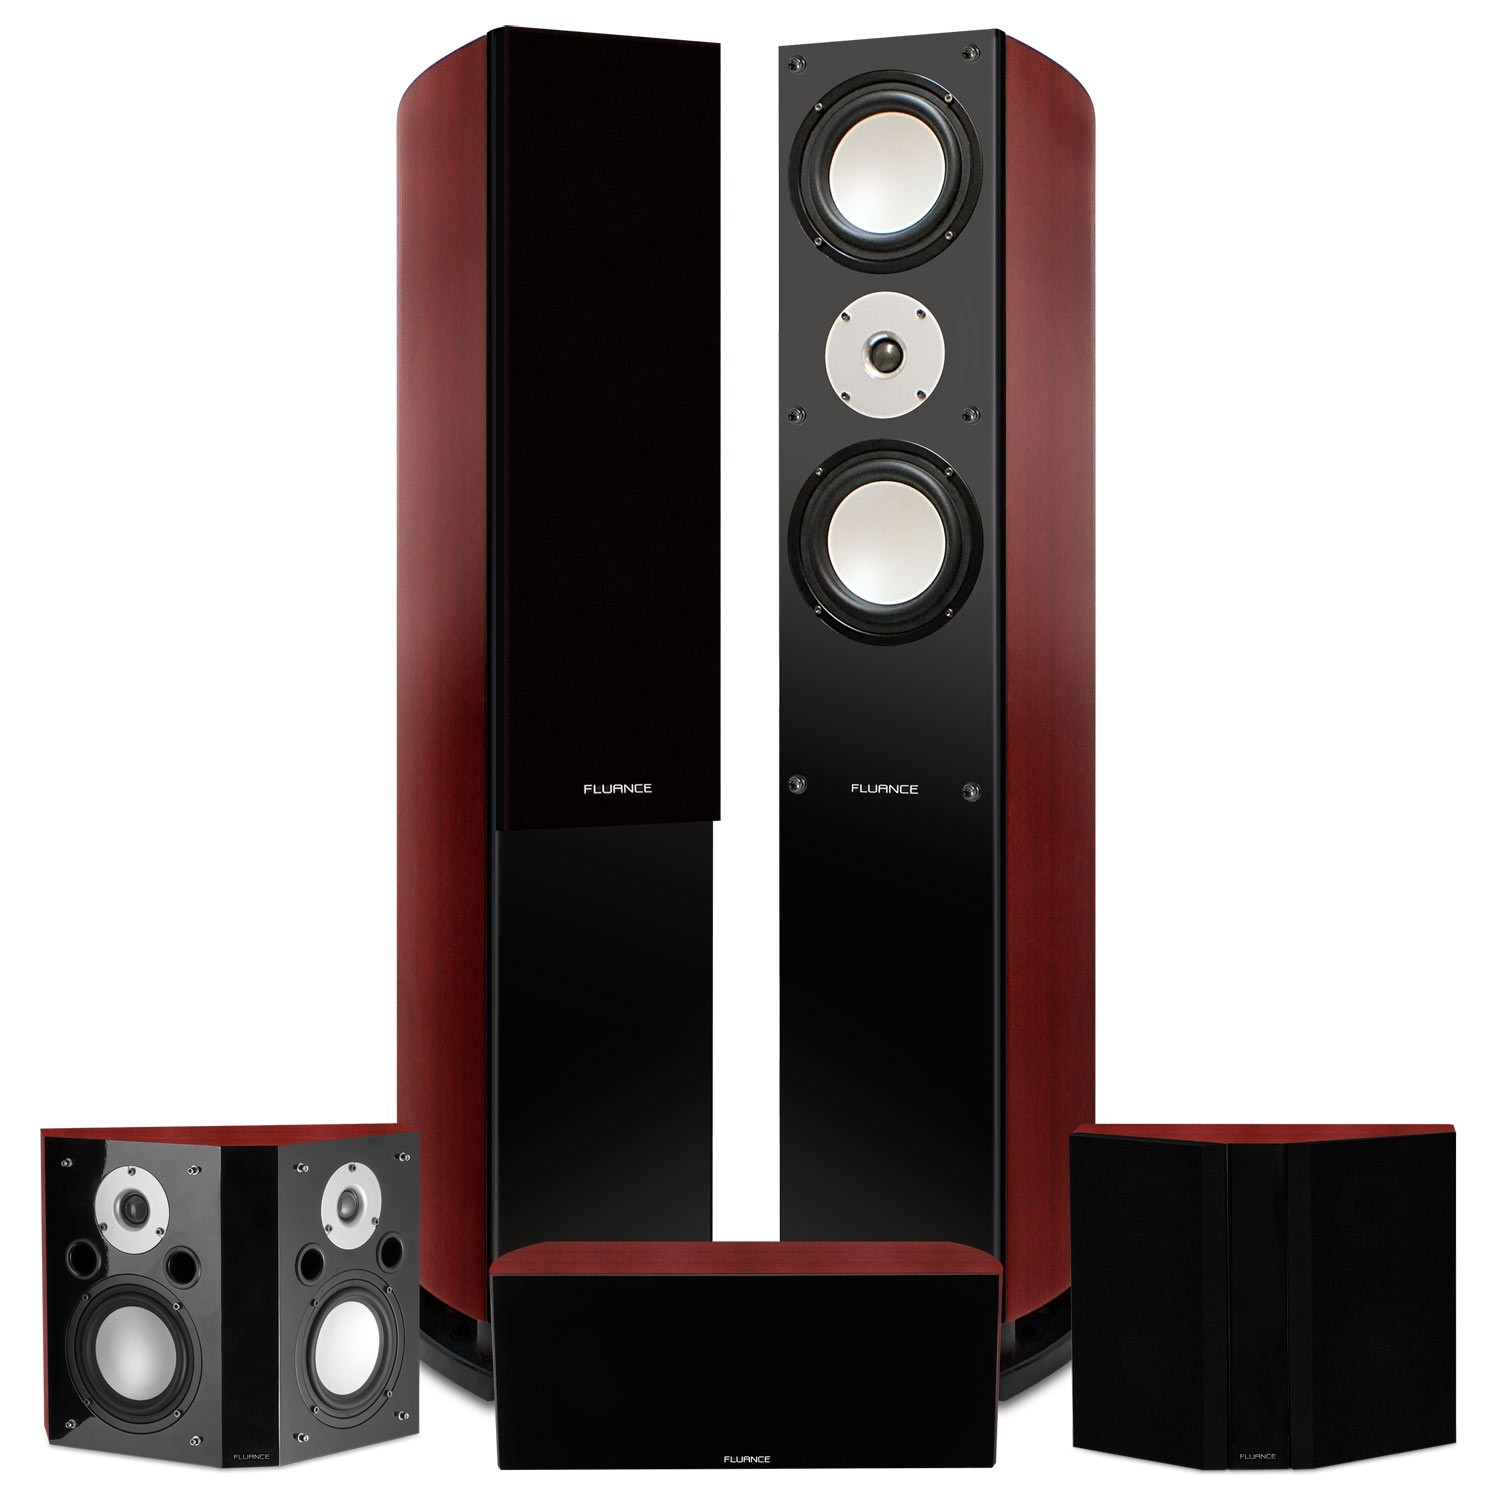 Reference Series Surround Sound Home Theater 5.0 Channel Speaker System - Mahogany